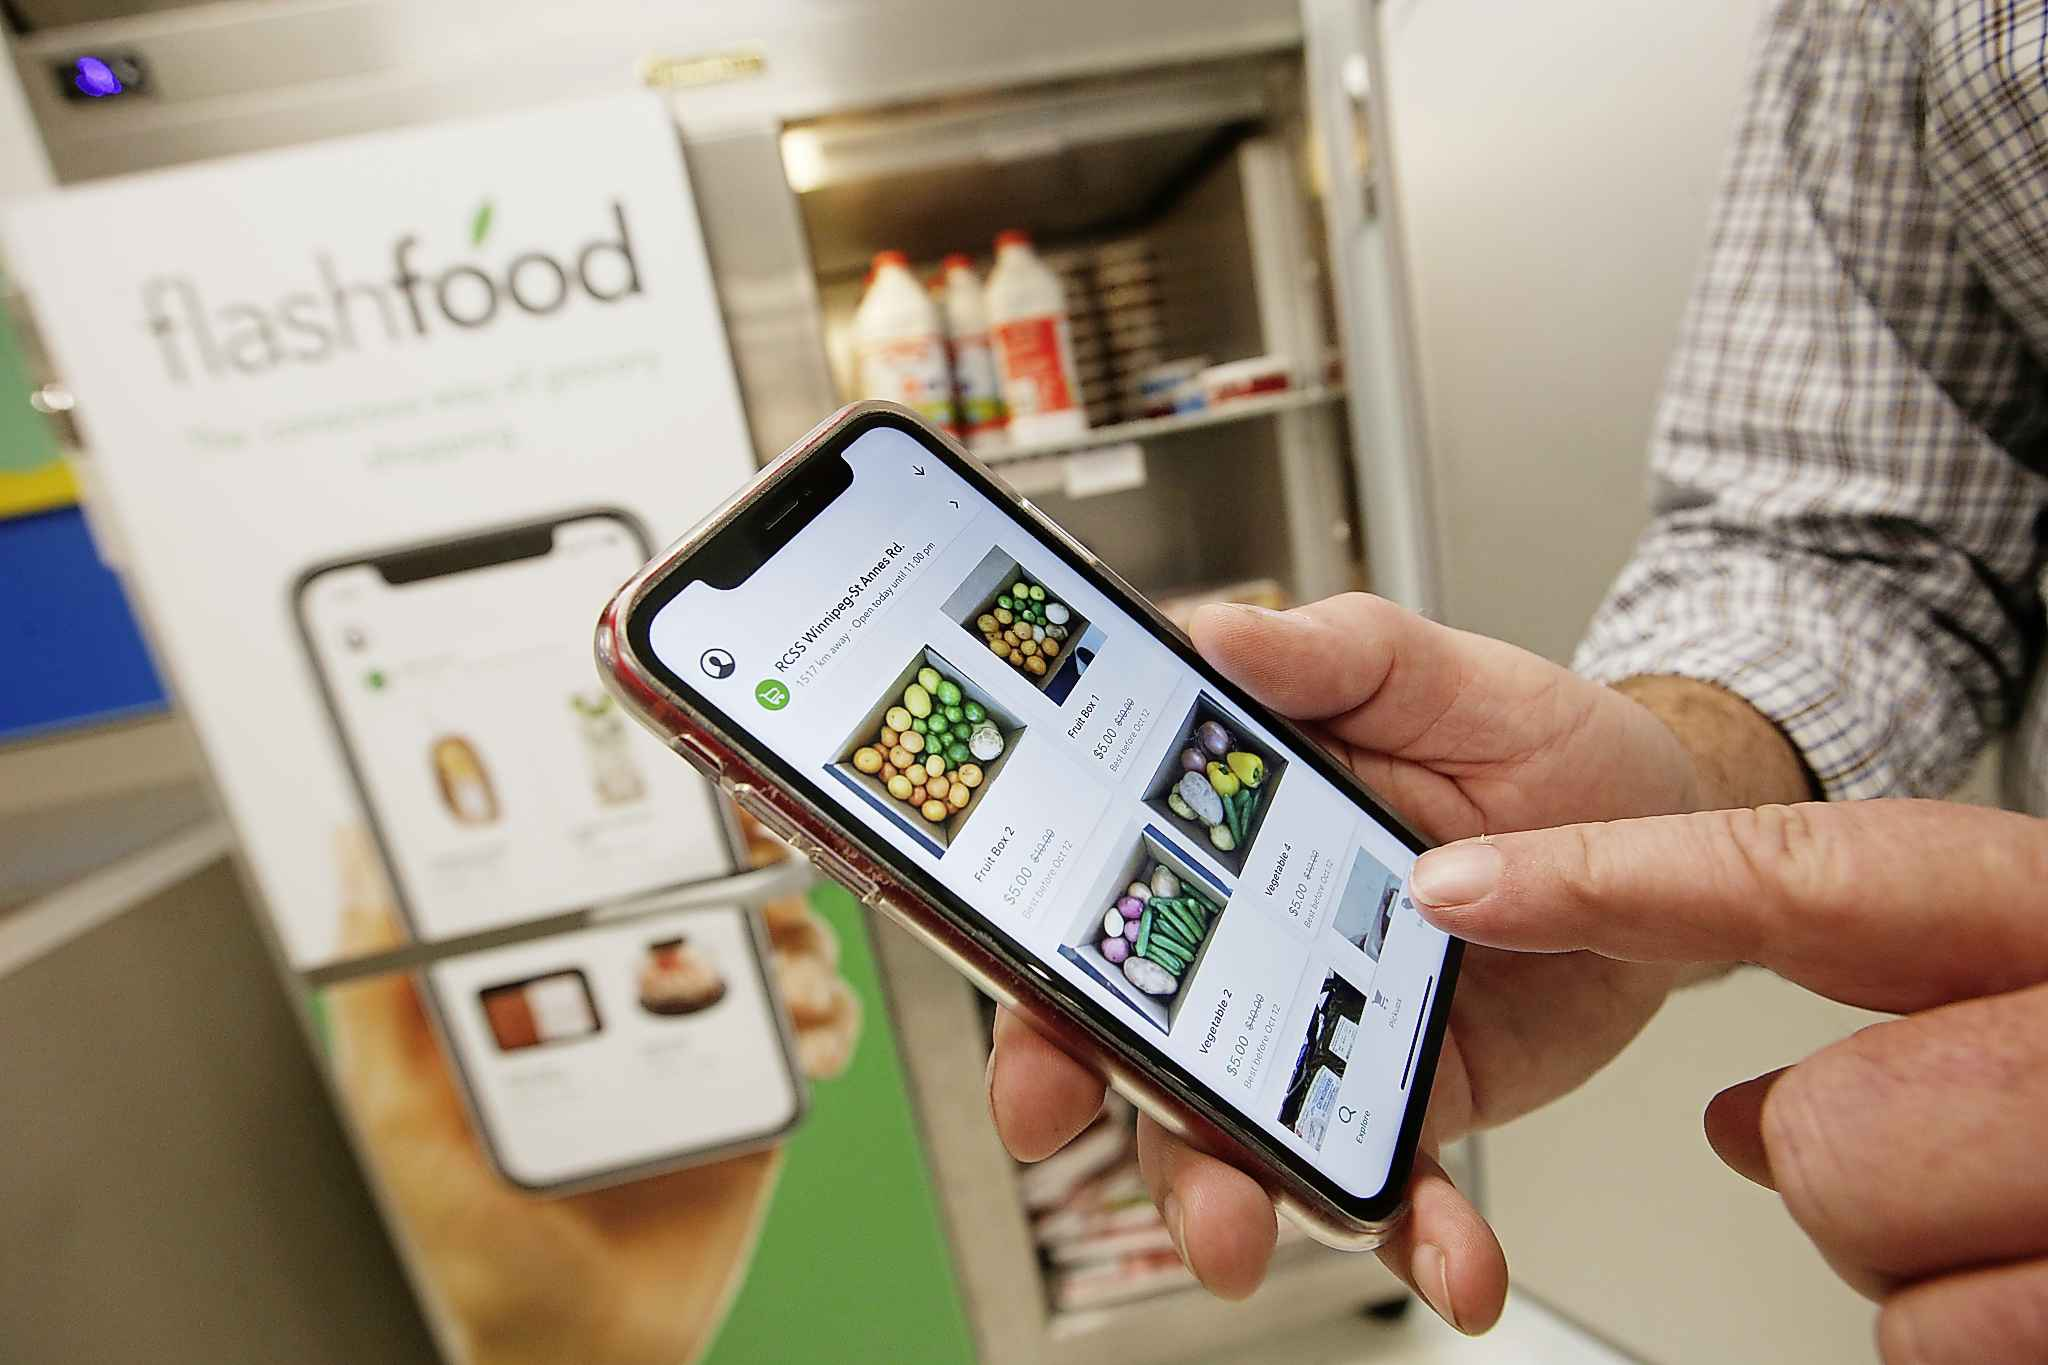 John Davidson, store manager at the Superstore on St Anne's Road, shows off their new app, FlashFood, which allows buyers to purchase near expired food at reduced prices. (John Woods / Winnipeg Free Press)